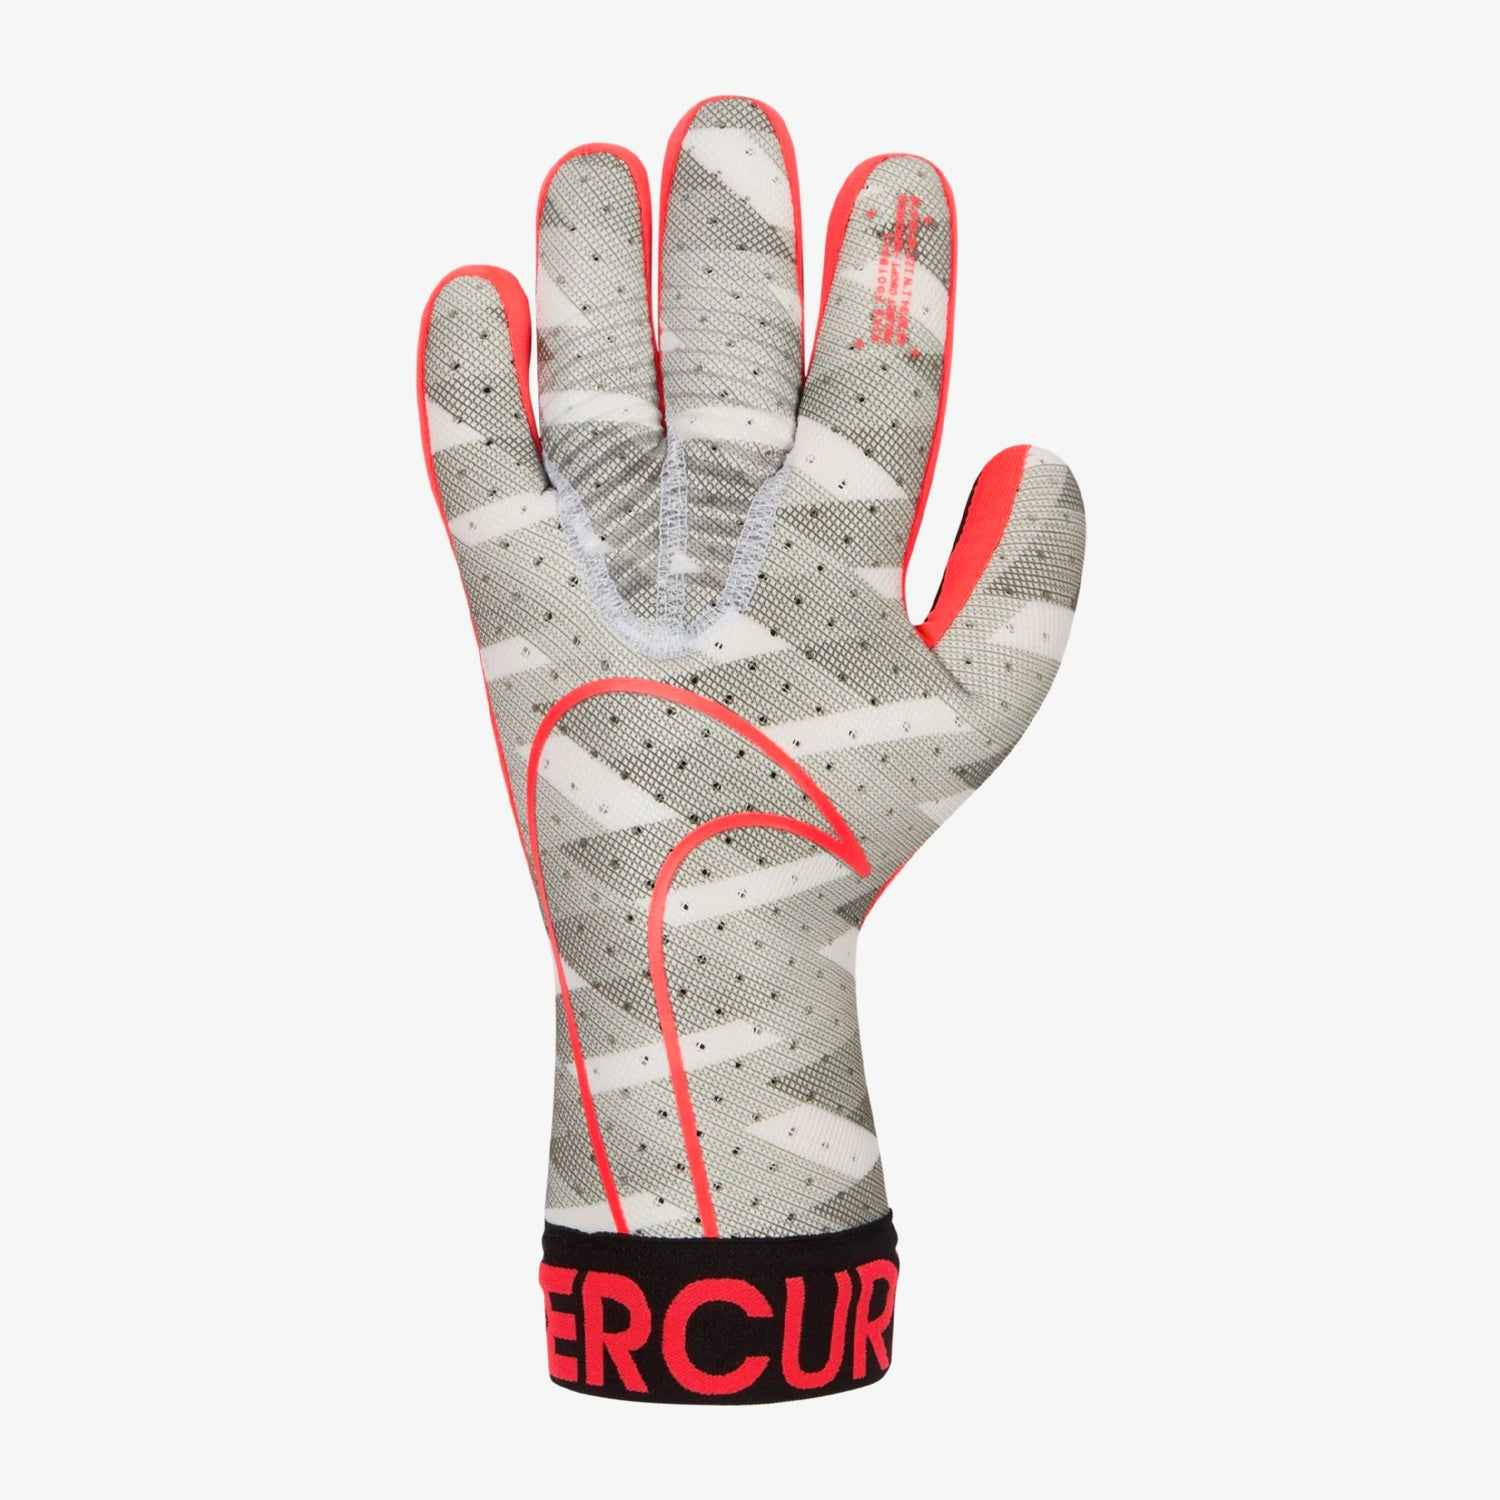 GFX Mercurial Touch Elite Goalkeeper Gloves – White/Black